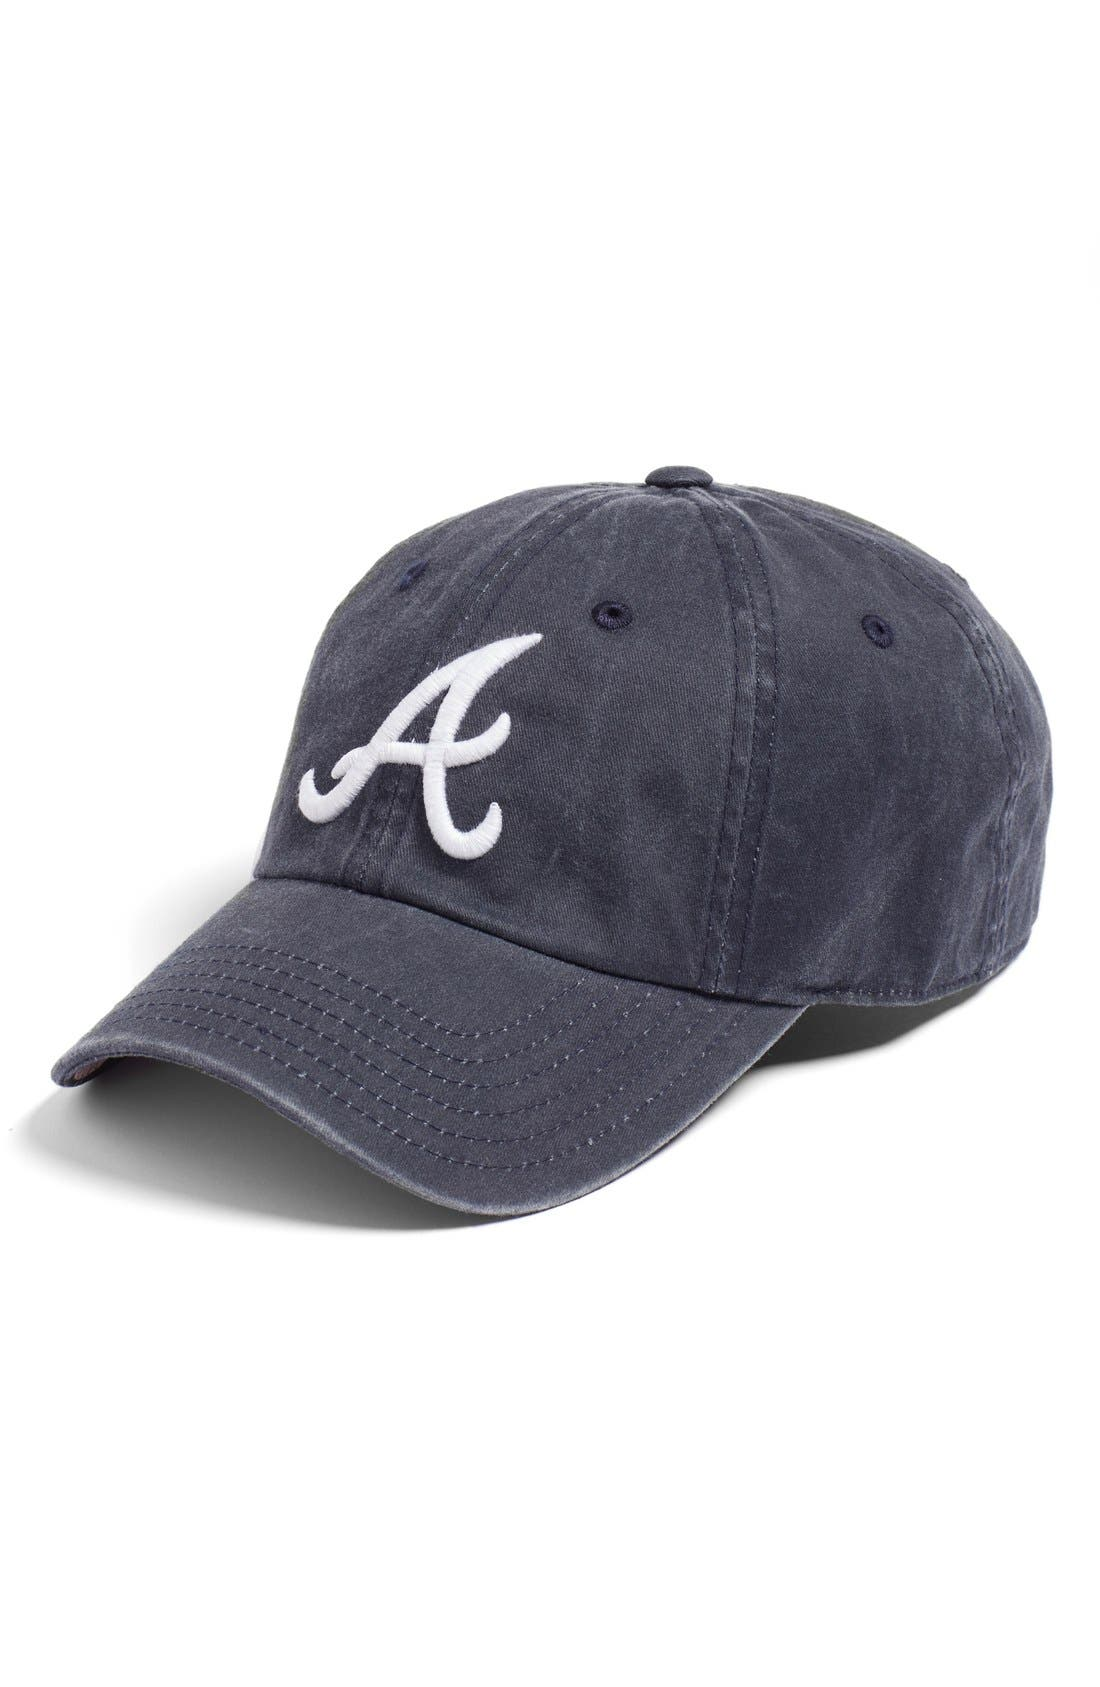 Alternate Image 1 Selected - American Needle New Raglan - Atlanta Braves Baseball Cap